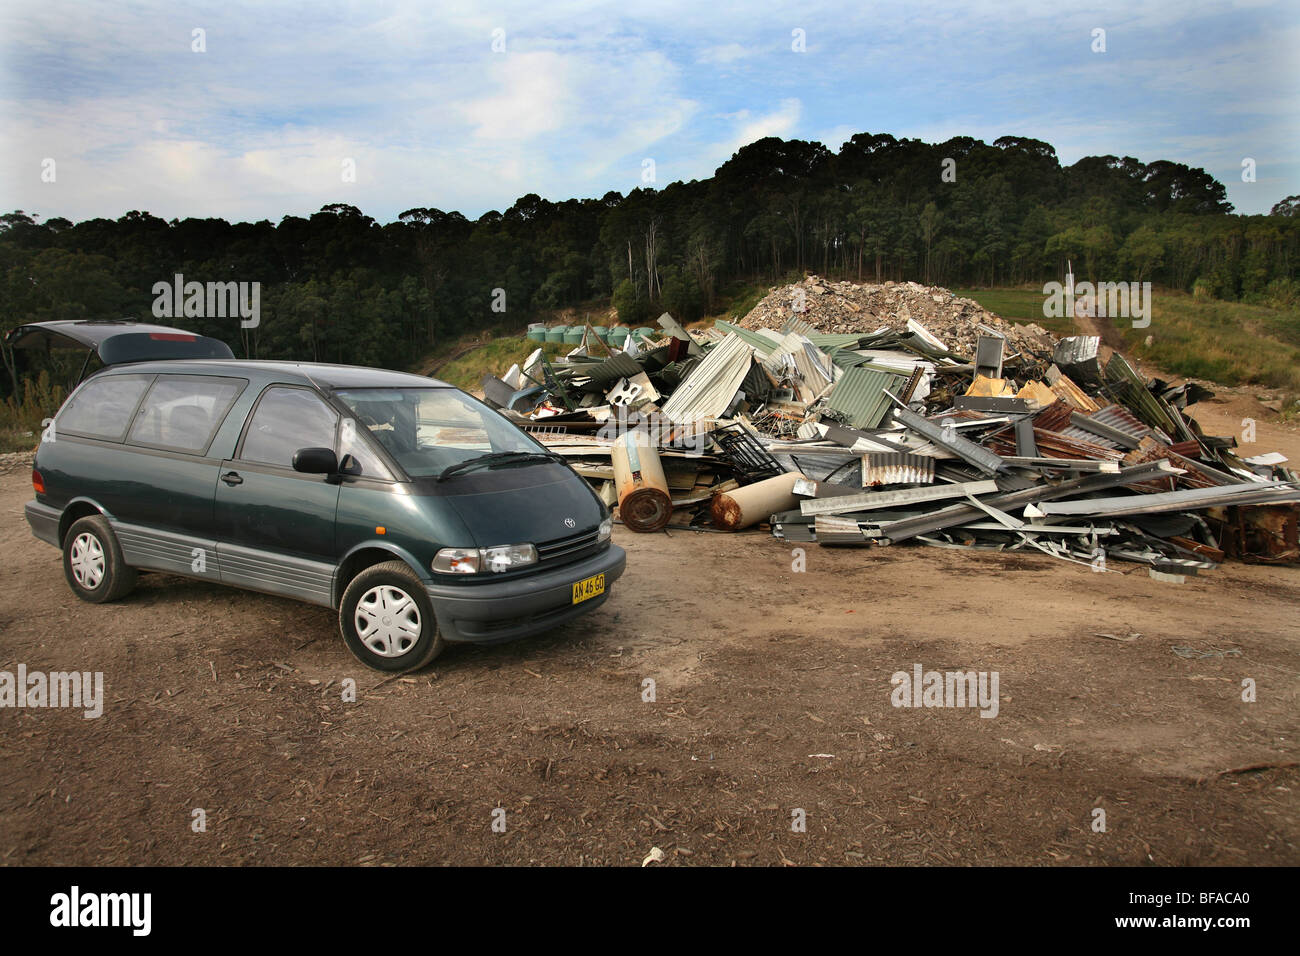 Late model van with metal at dump about to be recycled - Stock Image